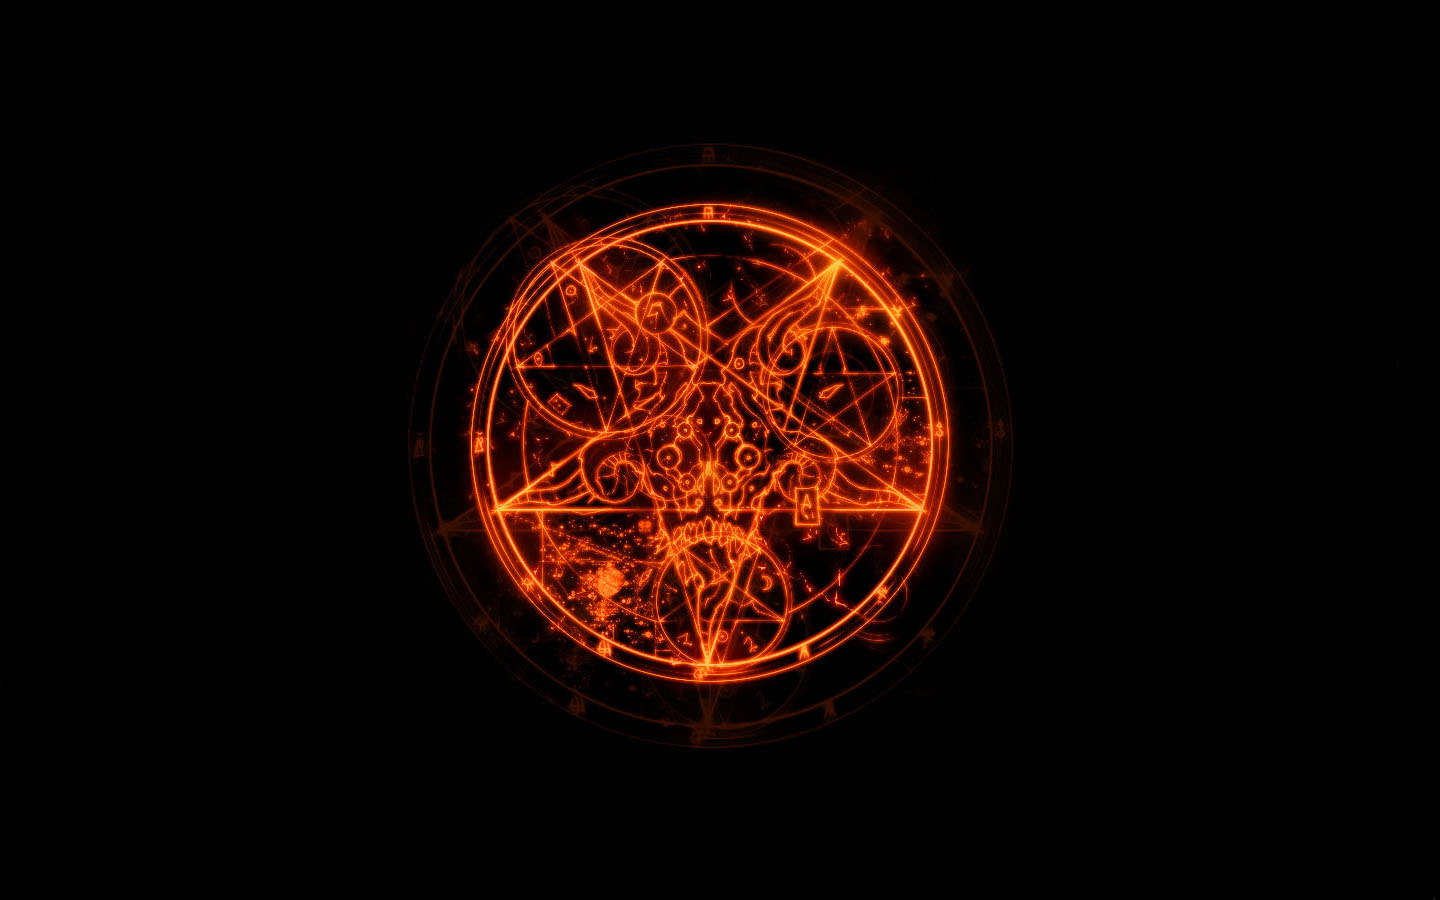 Inverted Pentagram Wallpaper 1440x900